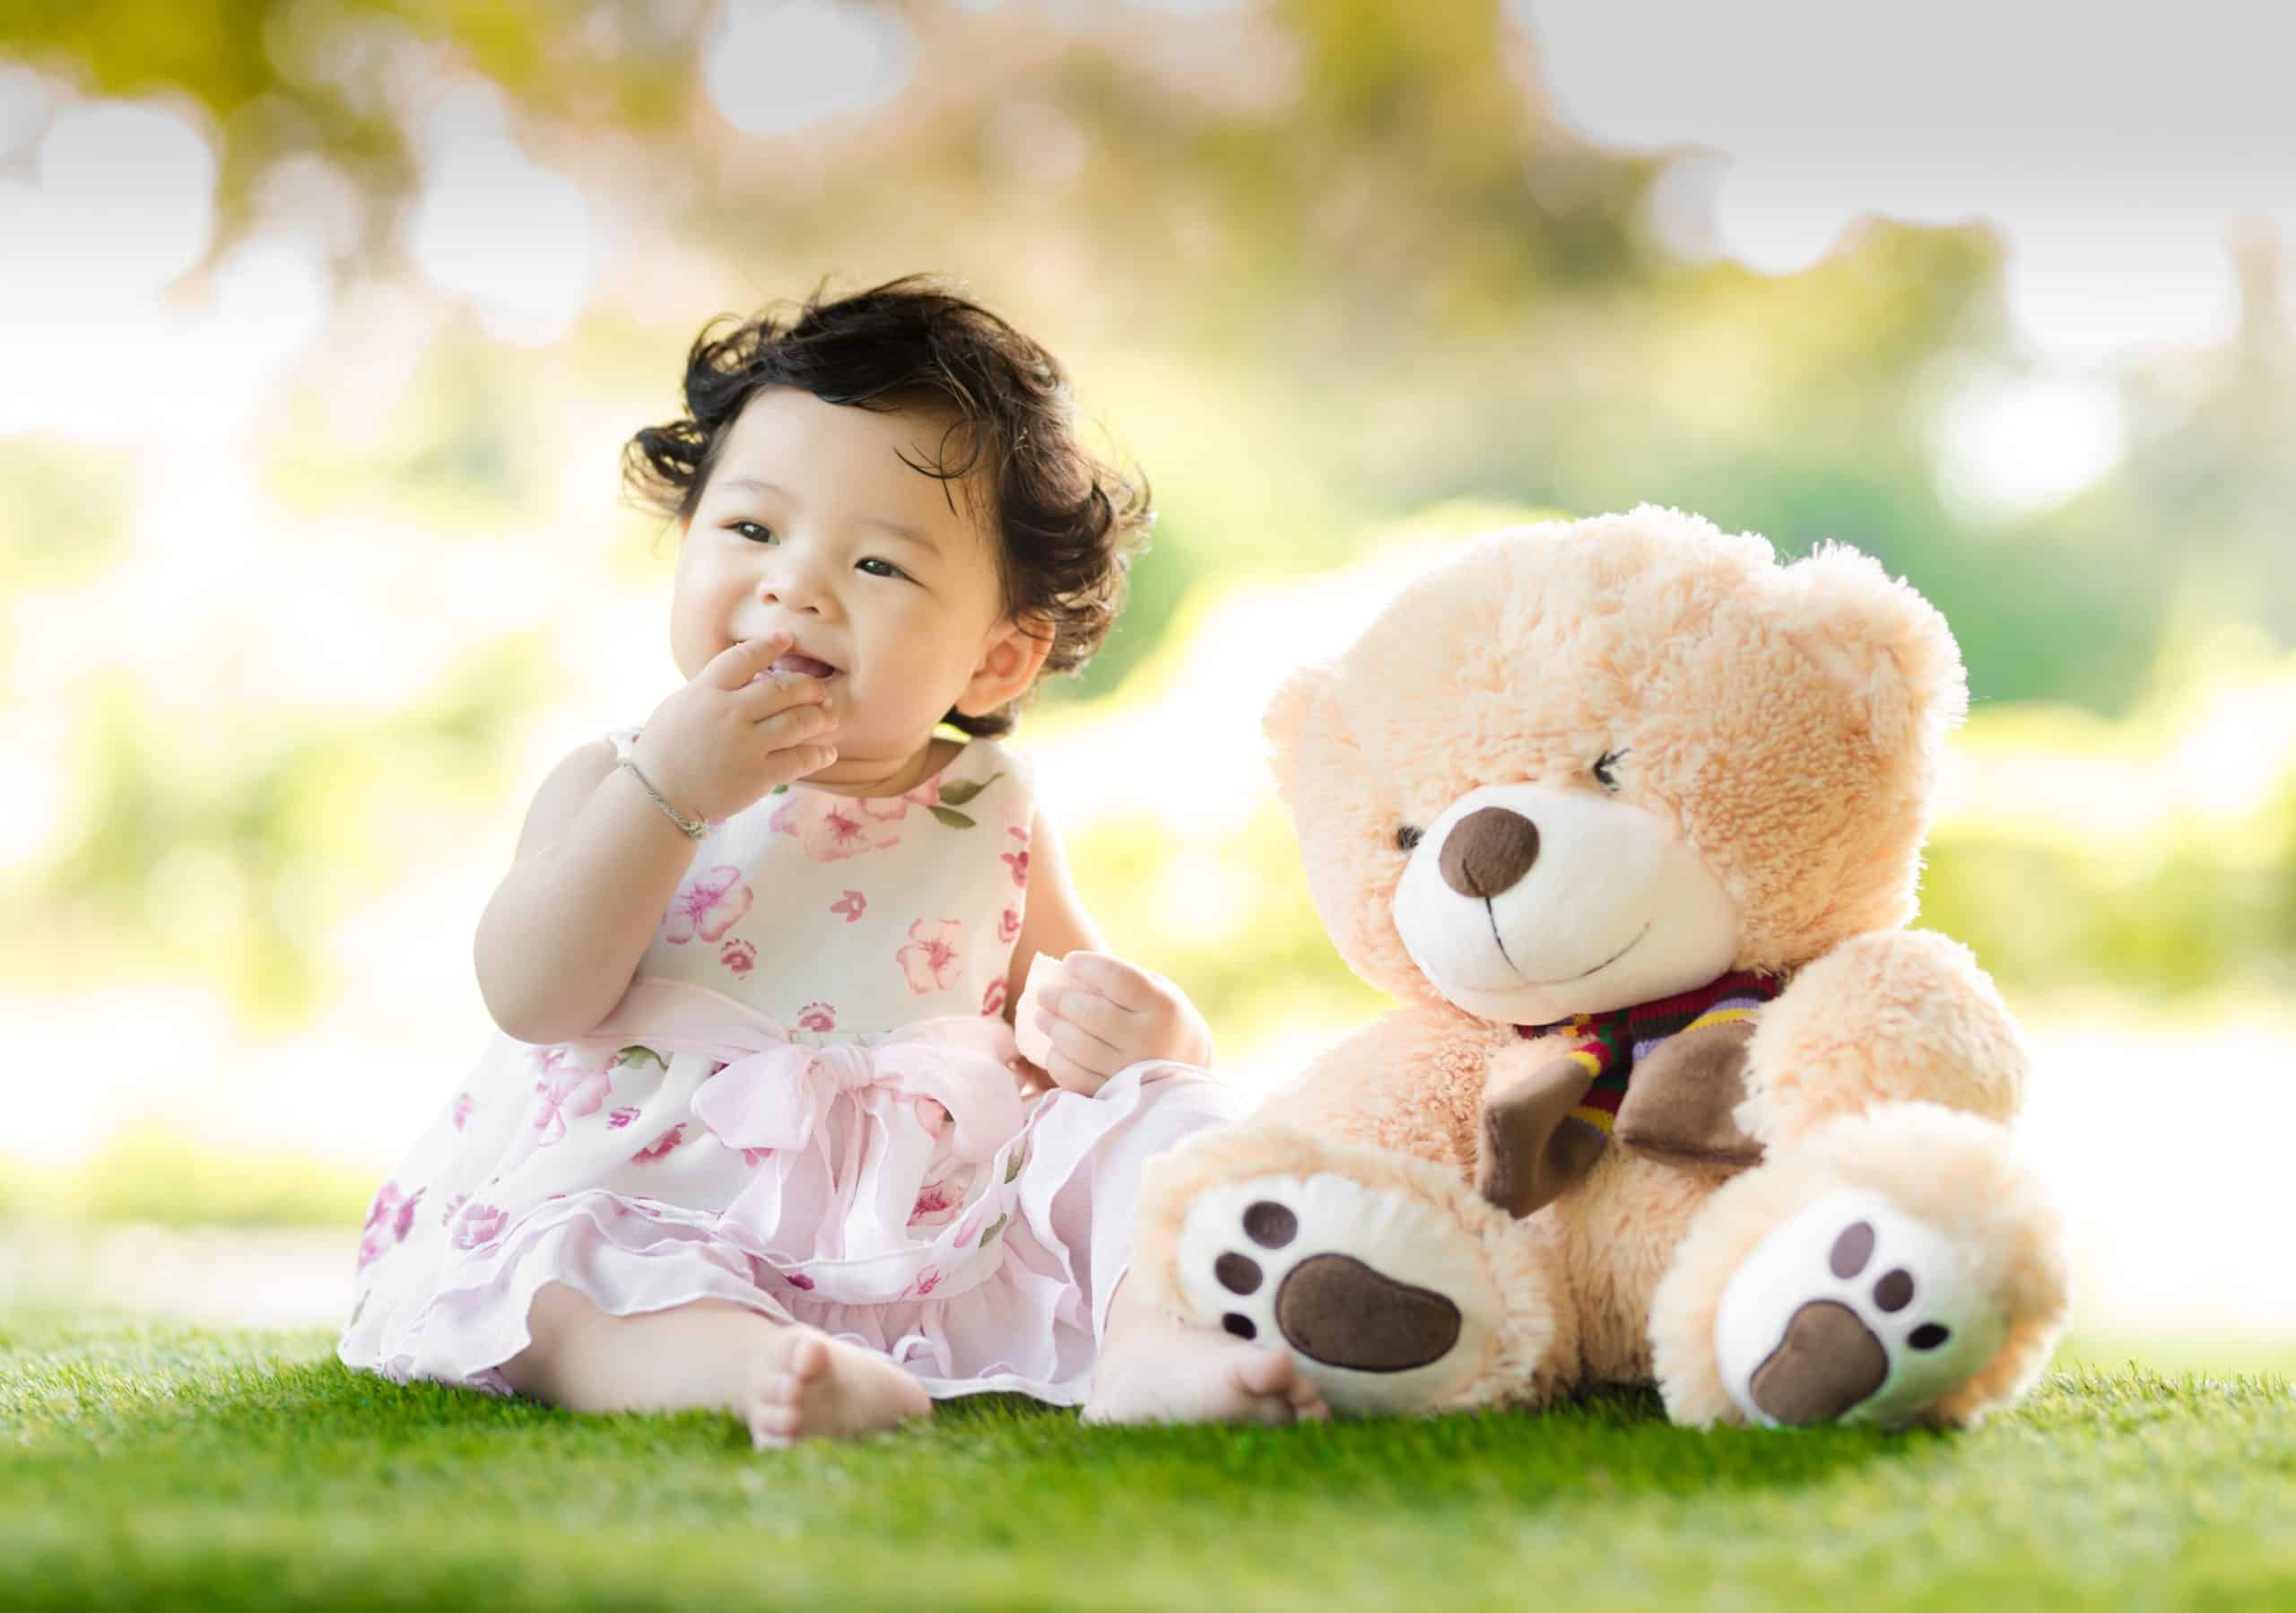 5 Tips For Your Next Baby Photography